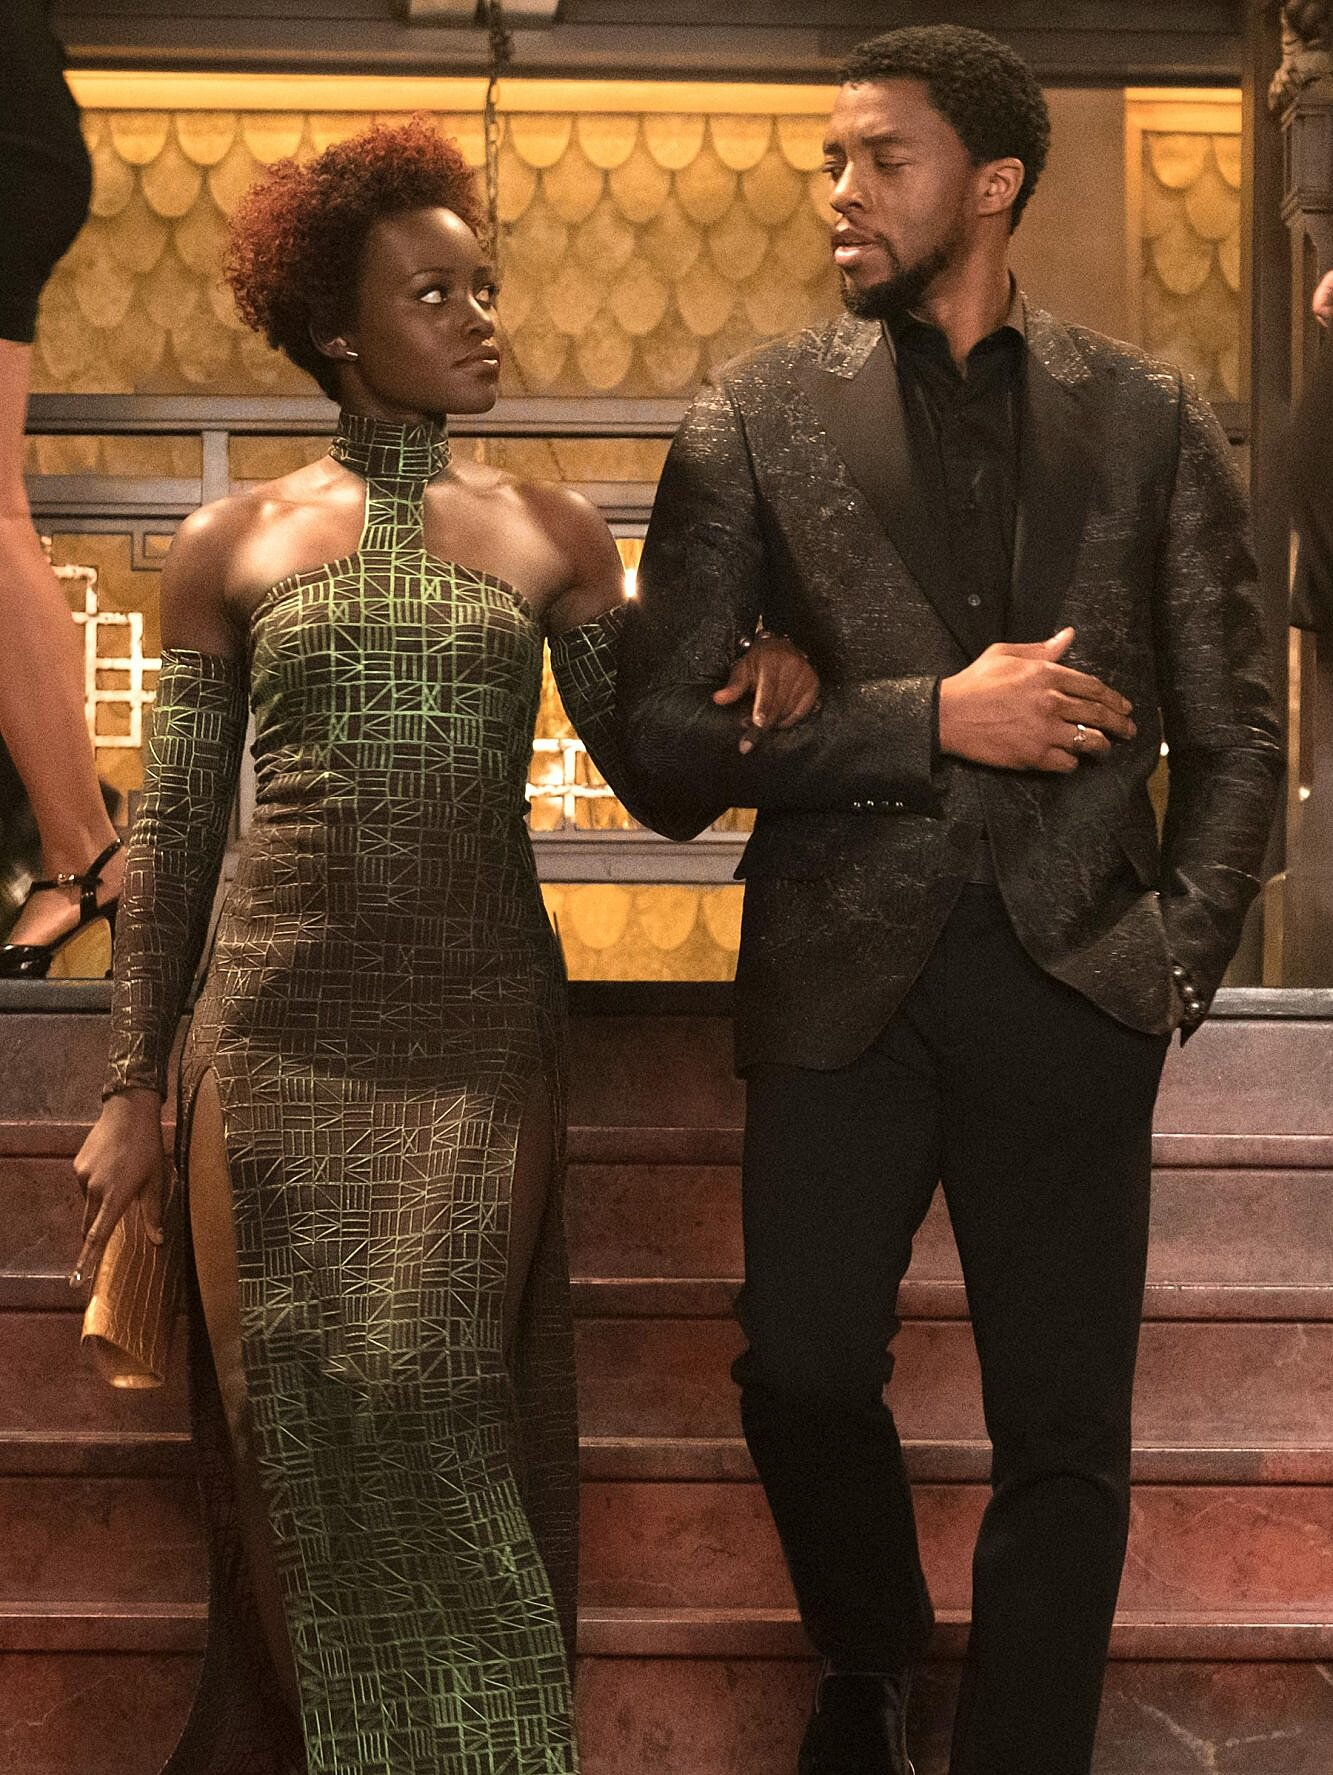 Black Panther style: Why Lupita Nyong'o wears green | EW.com